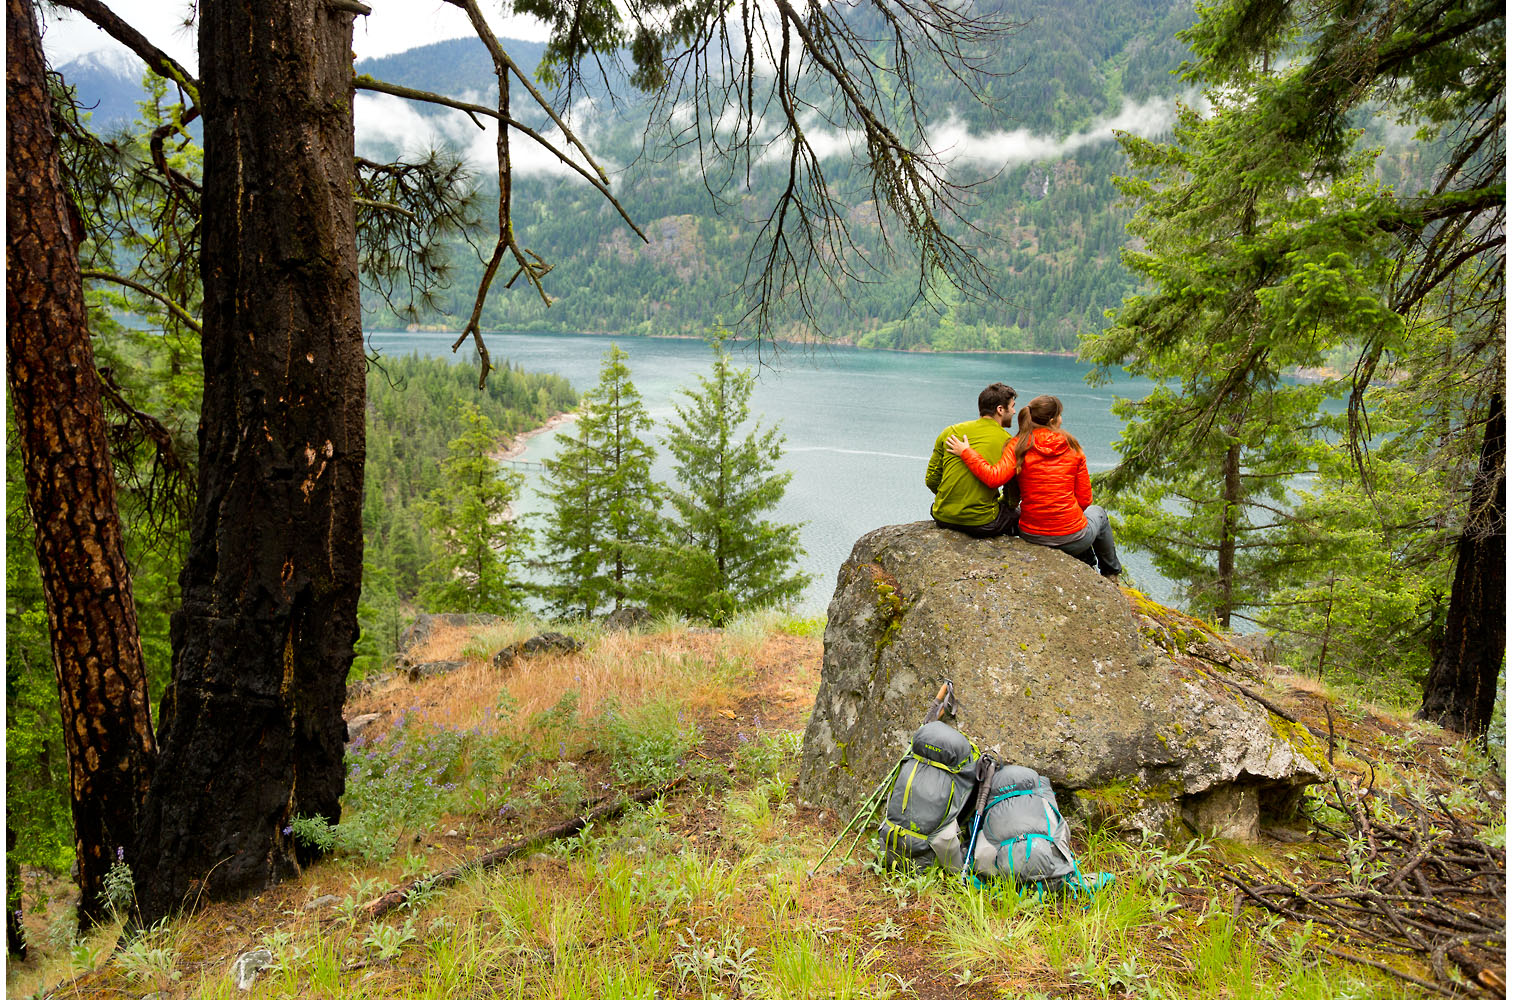 Adventure: Shannon Decker and Tyler Roberts on a backpack trip along Lake Chelan, North Cascades, Washington